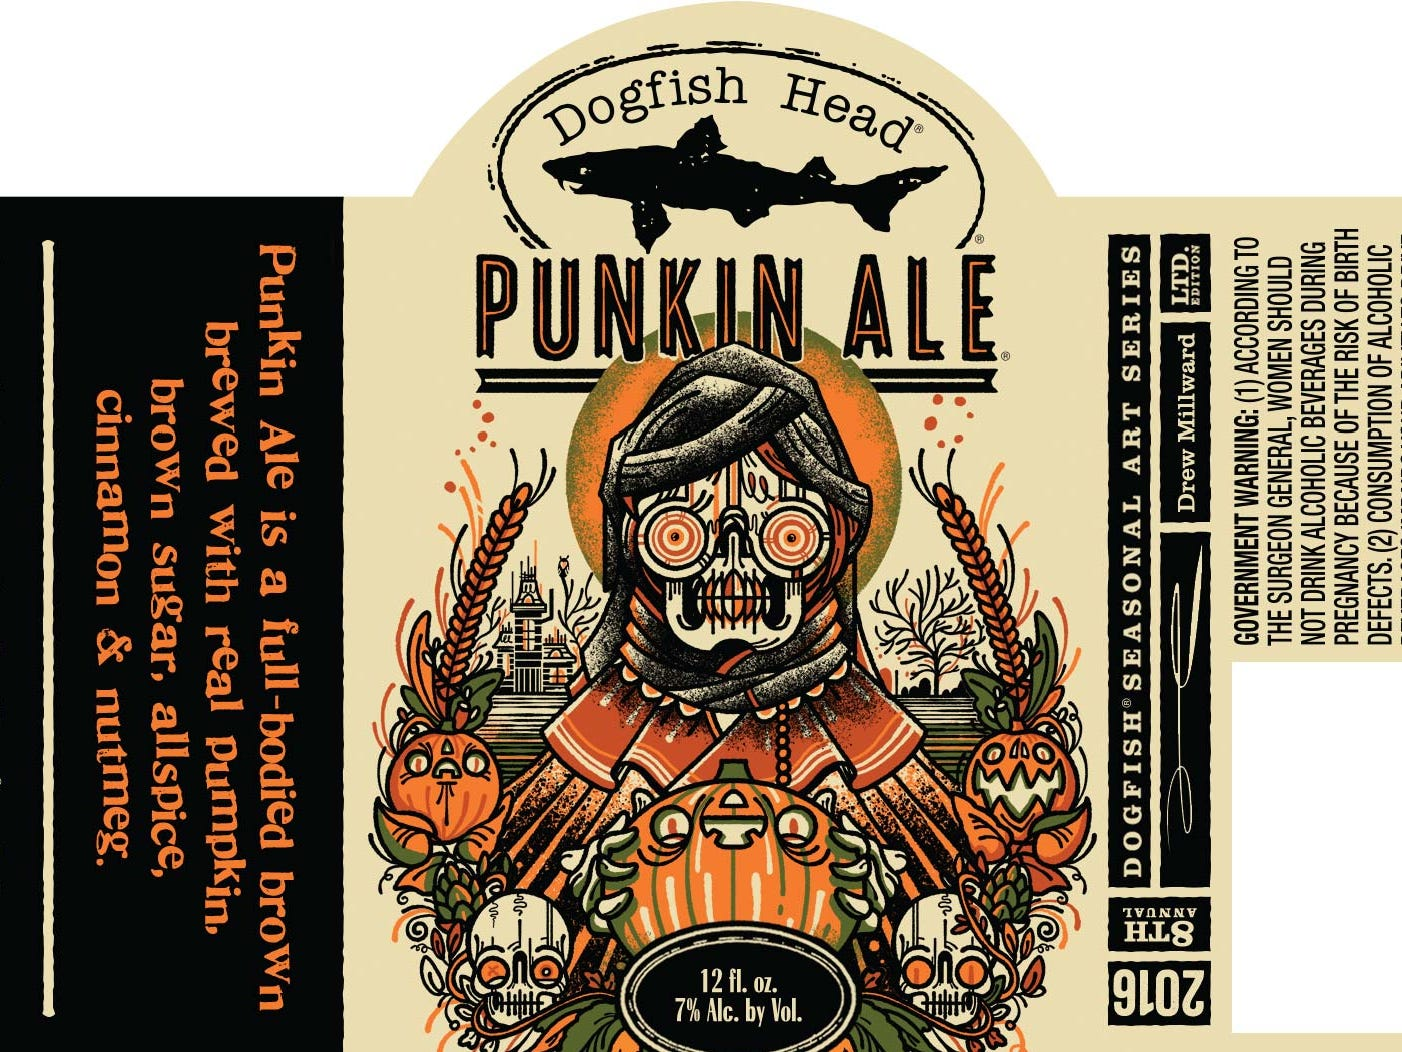 Dogfish Head's Punkin Ale label for 2016.